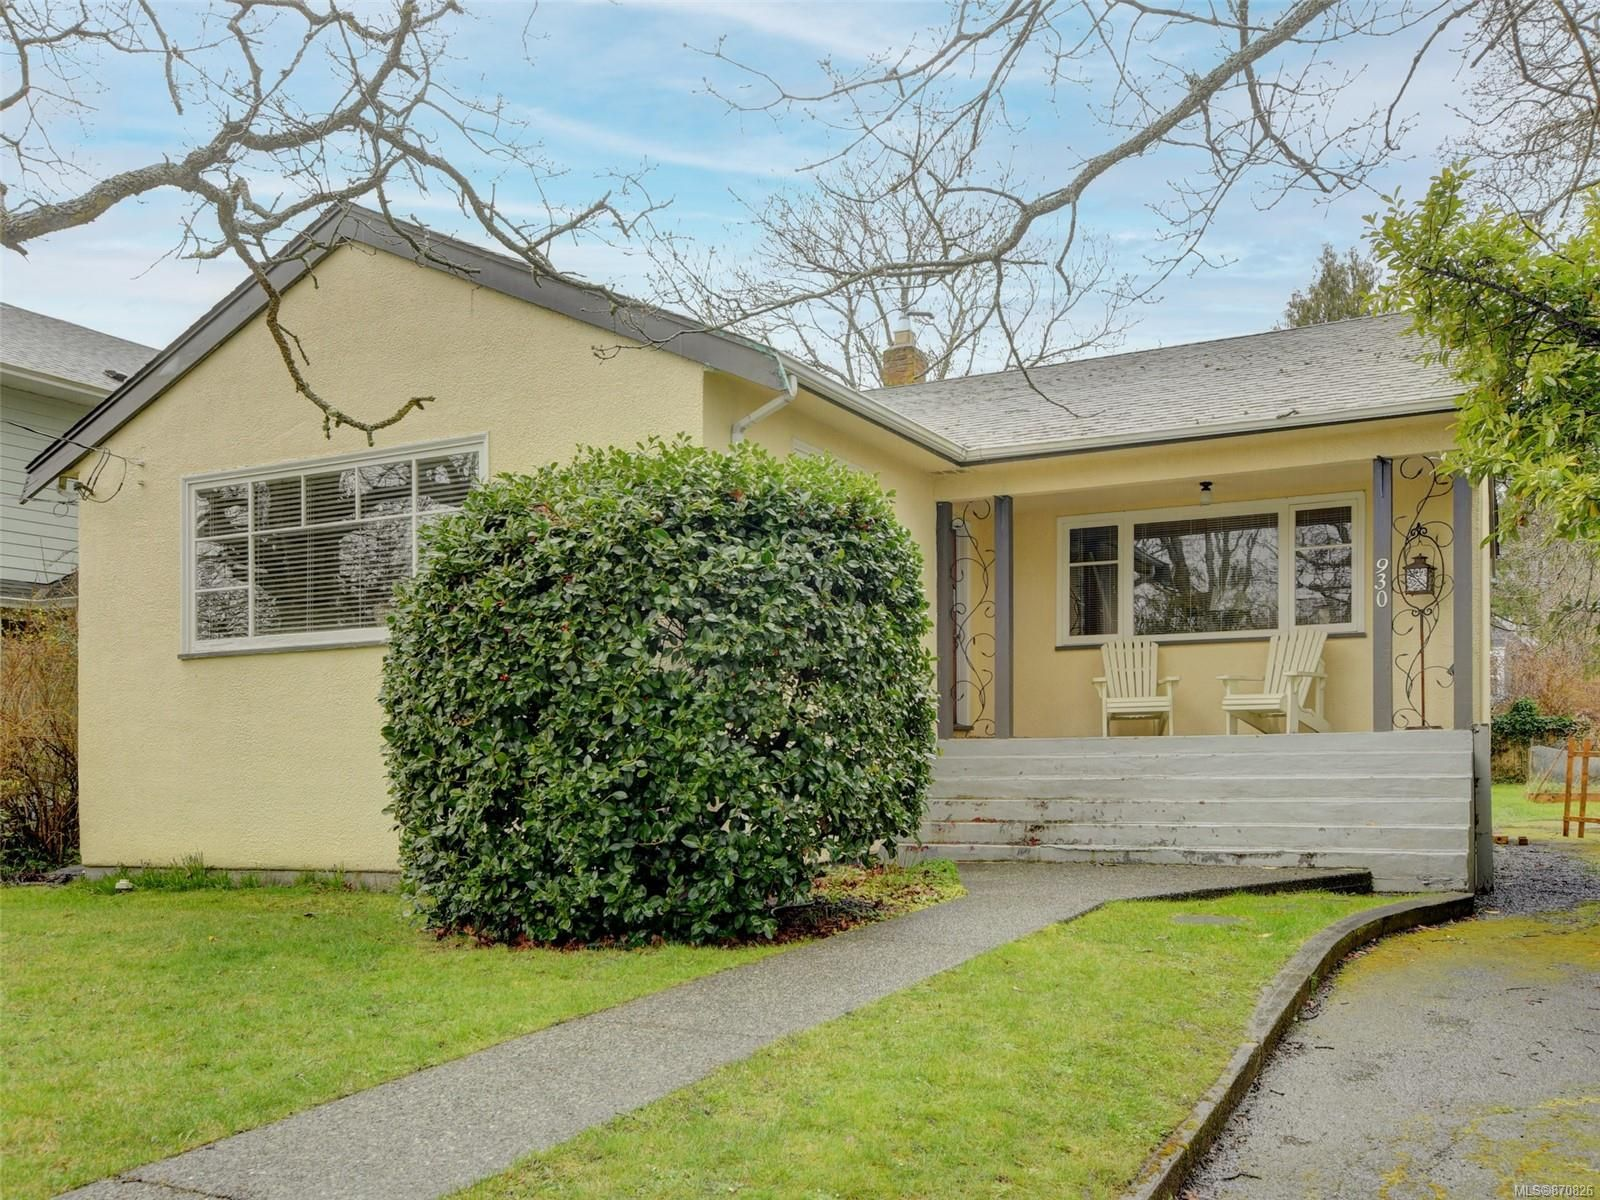 Main Photo: 930 Bank St in : Vi Fairfield East House for sale (Victoria)  : MLS®# 870826